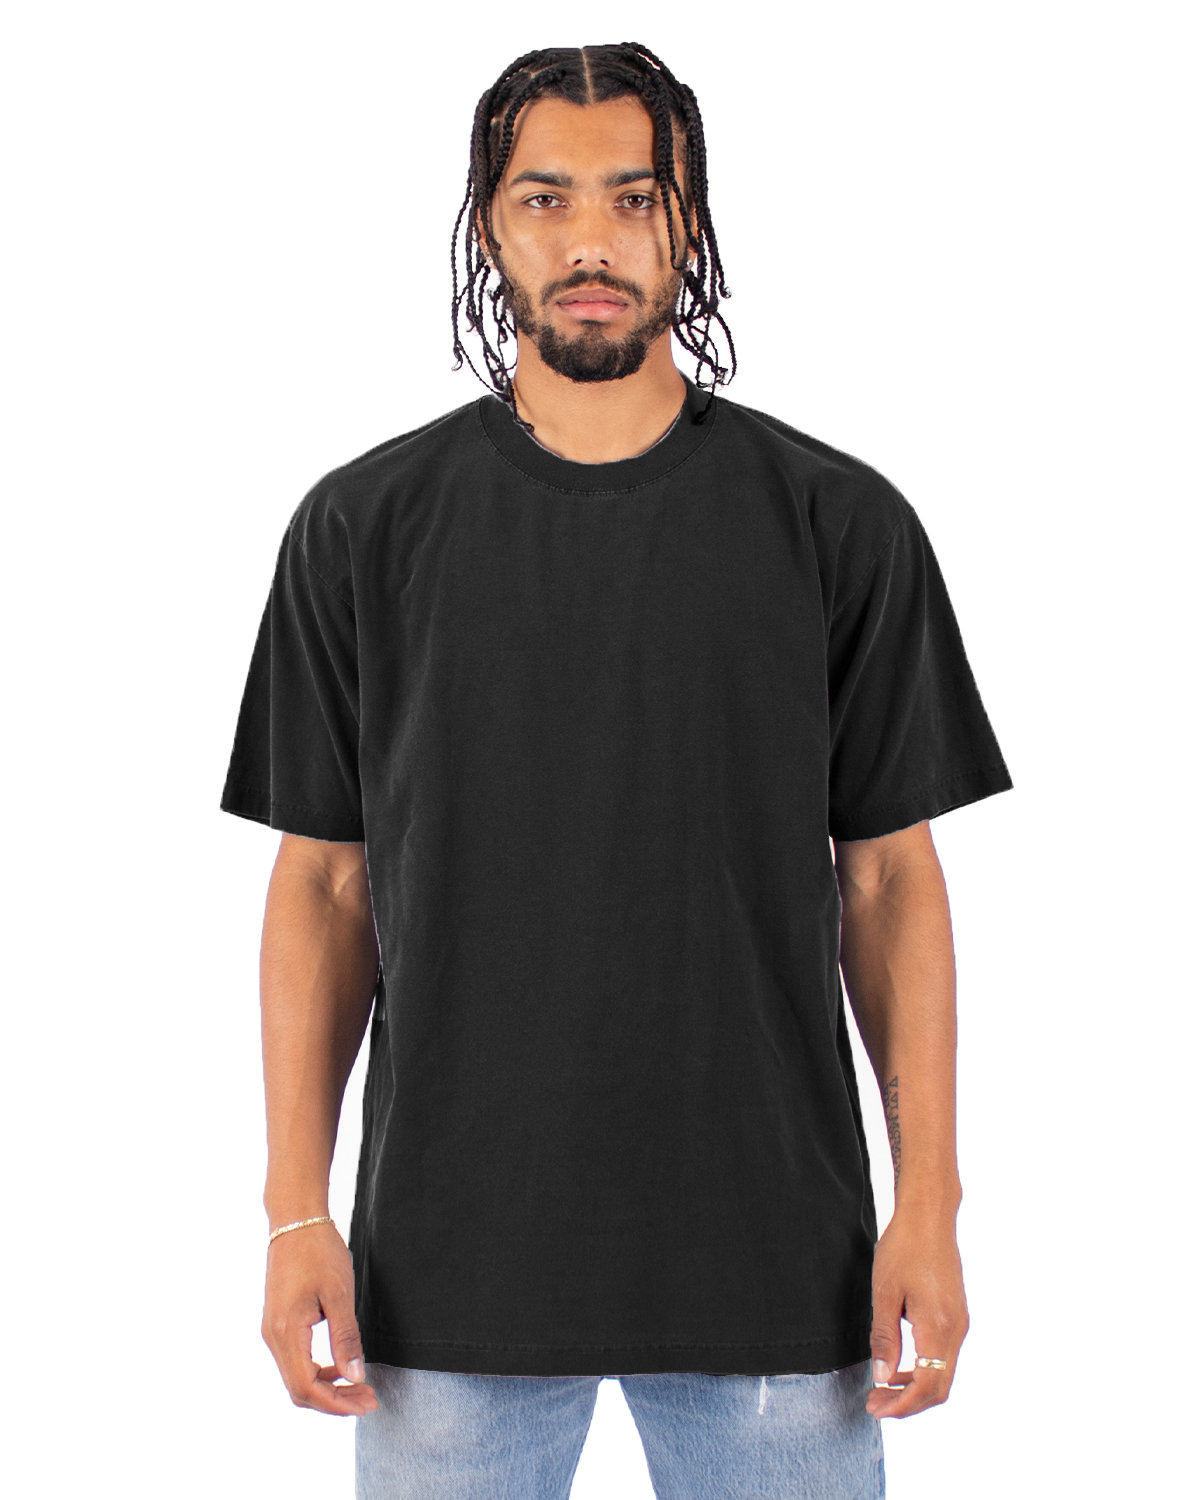 Shaka Wear Drop Ship Garment-Dyed Crewneck T-Shirt BLACK